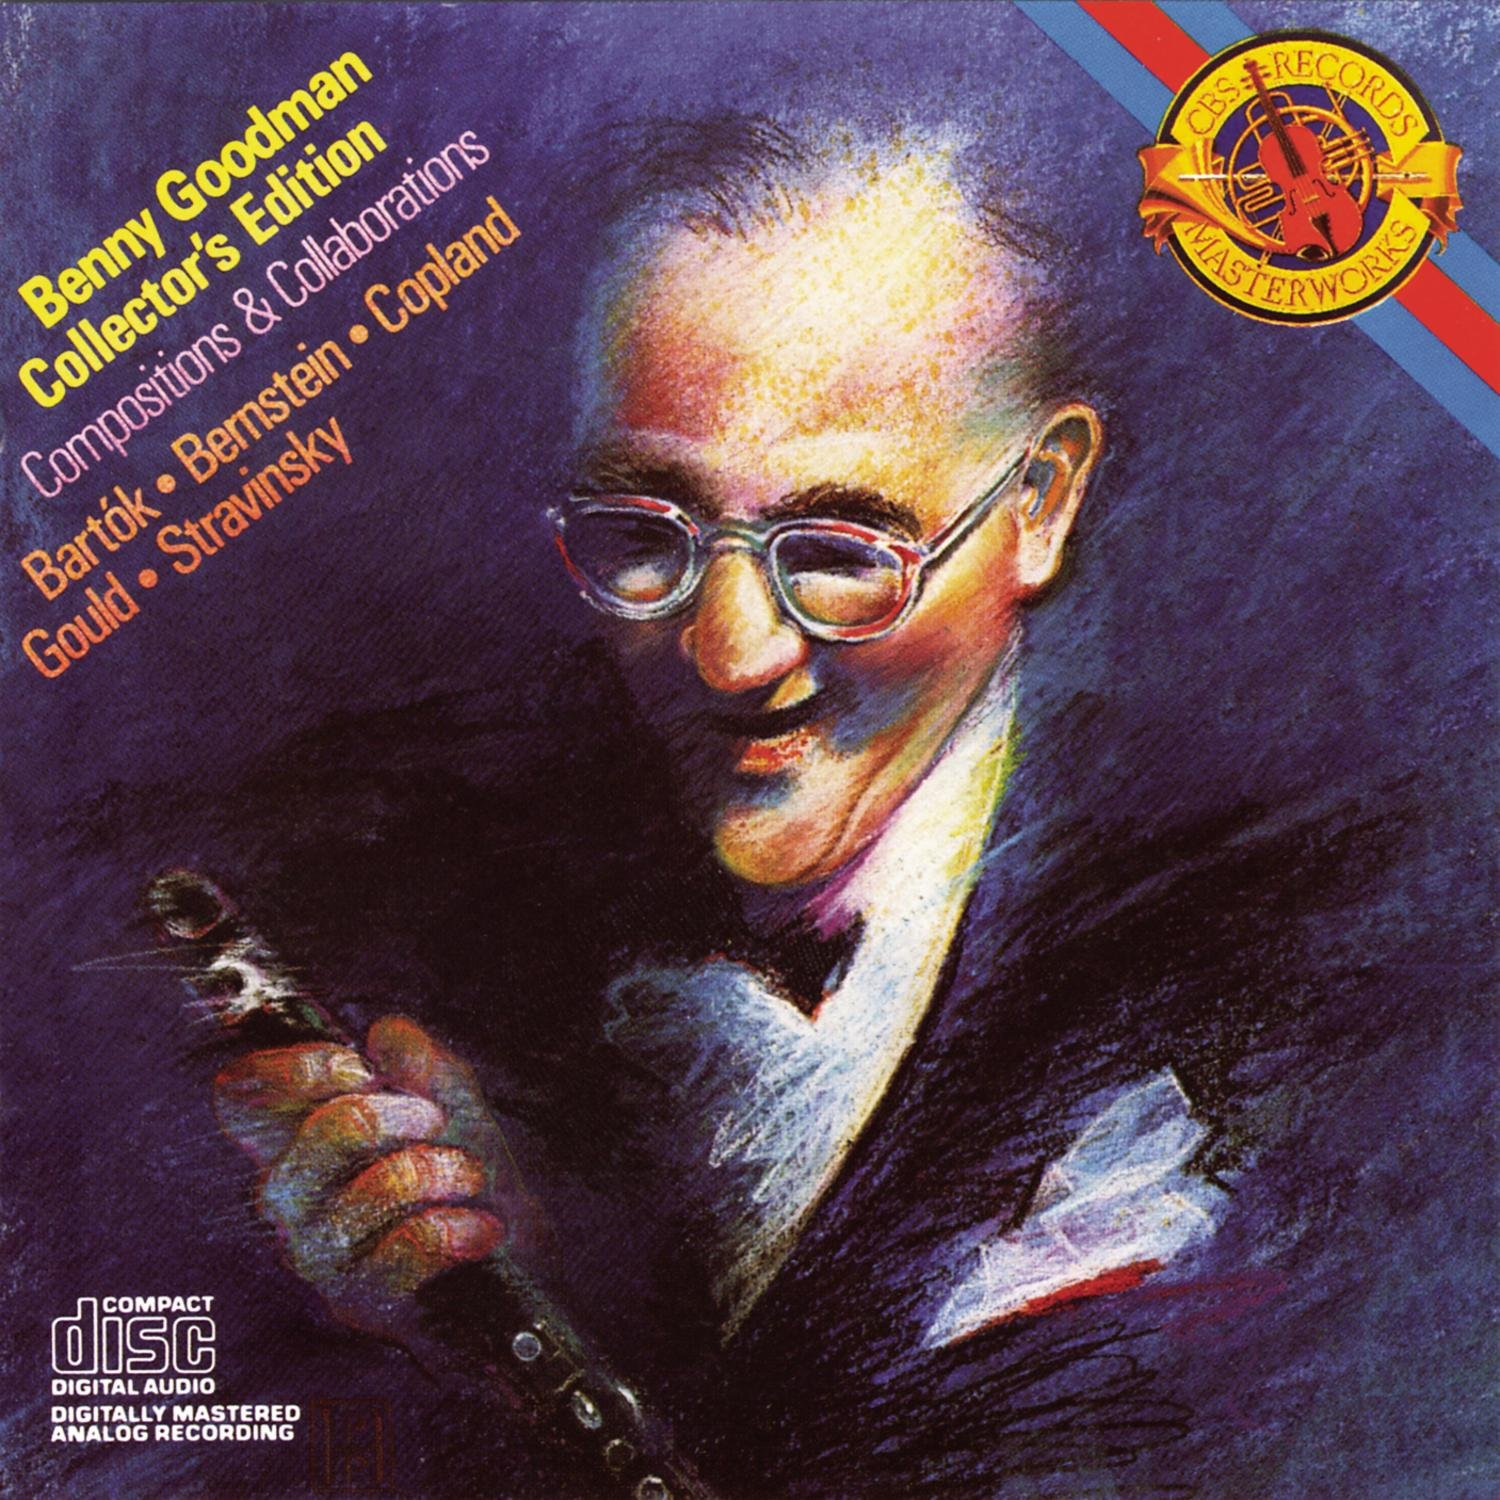 Benny Goodman Collector's Edition by CBS Masterworks